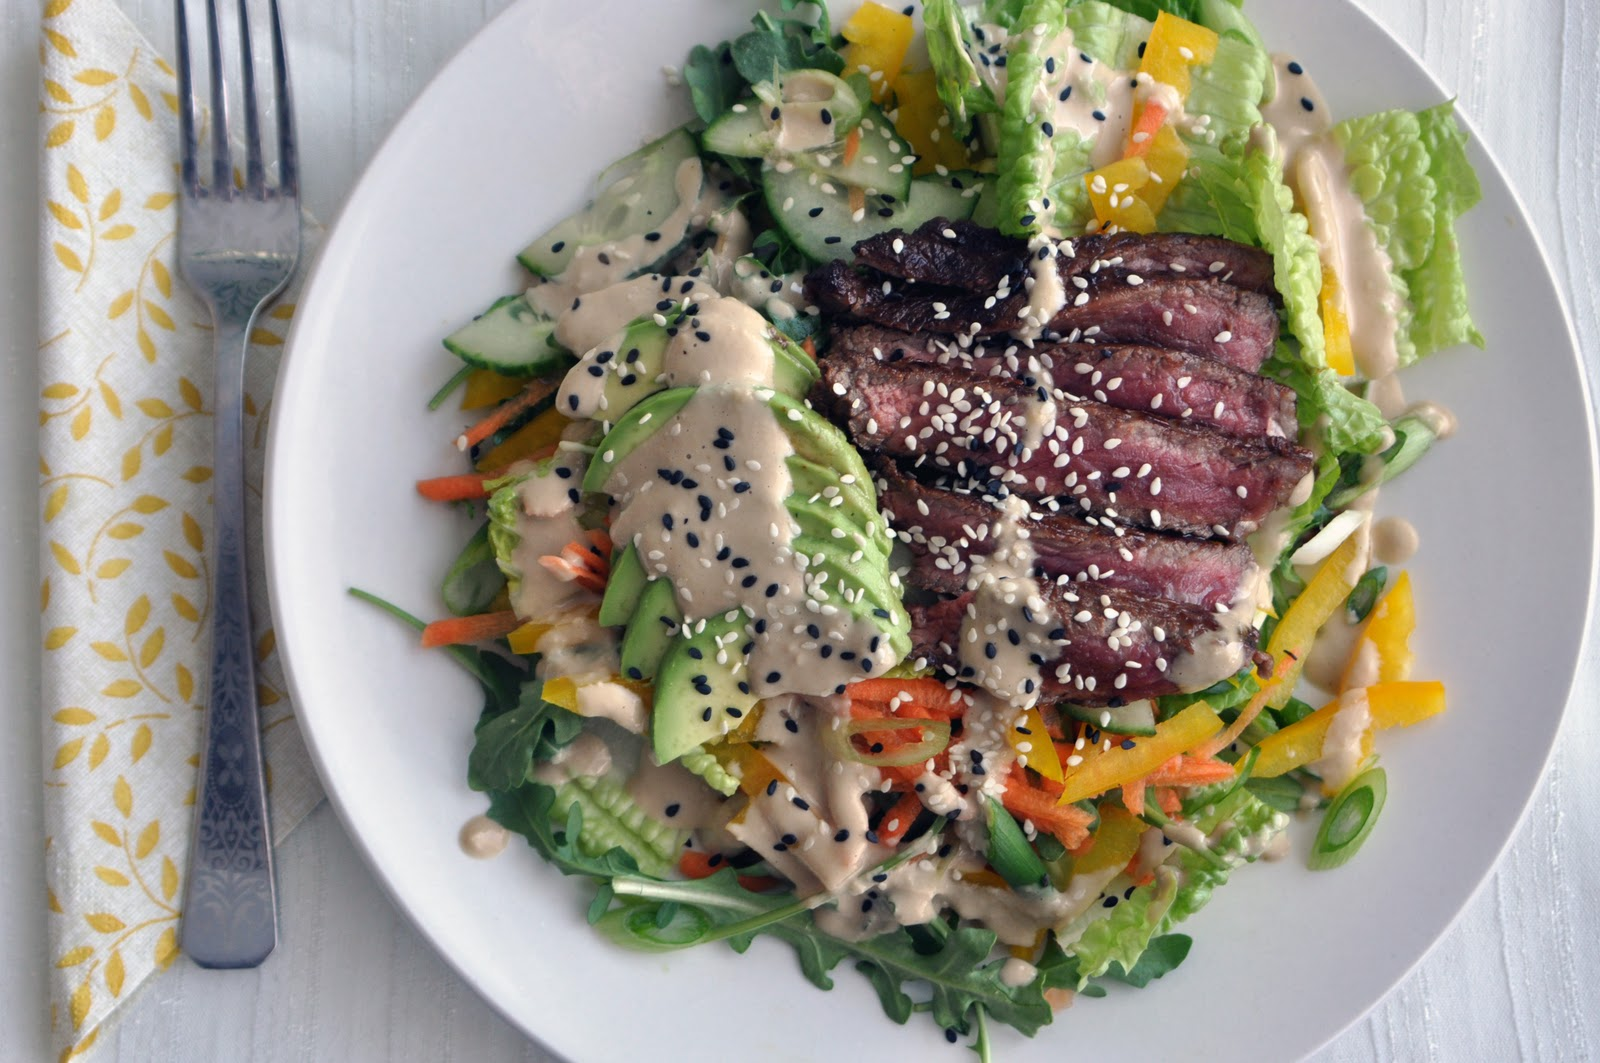 ... meal grilled steak salad with pineapple ginger dressing recipe key